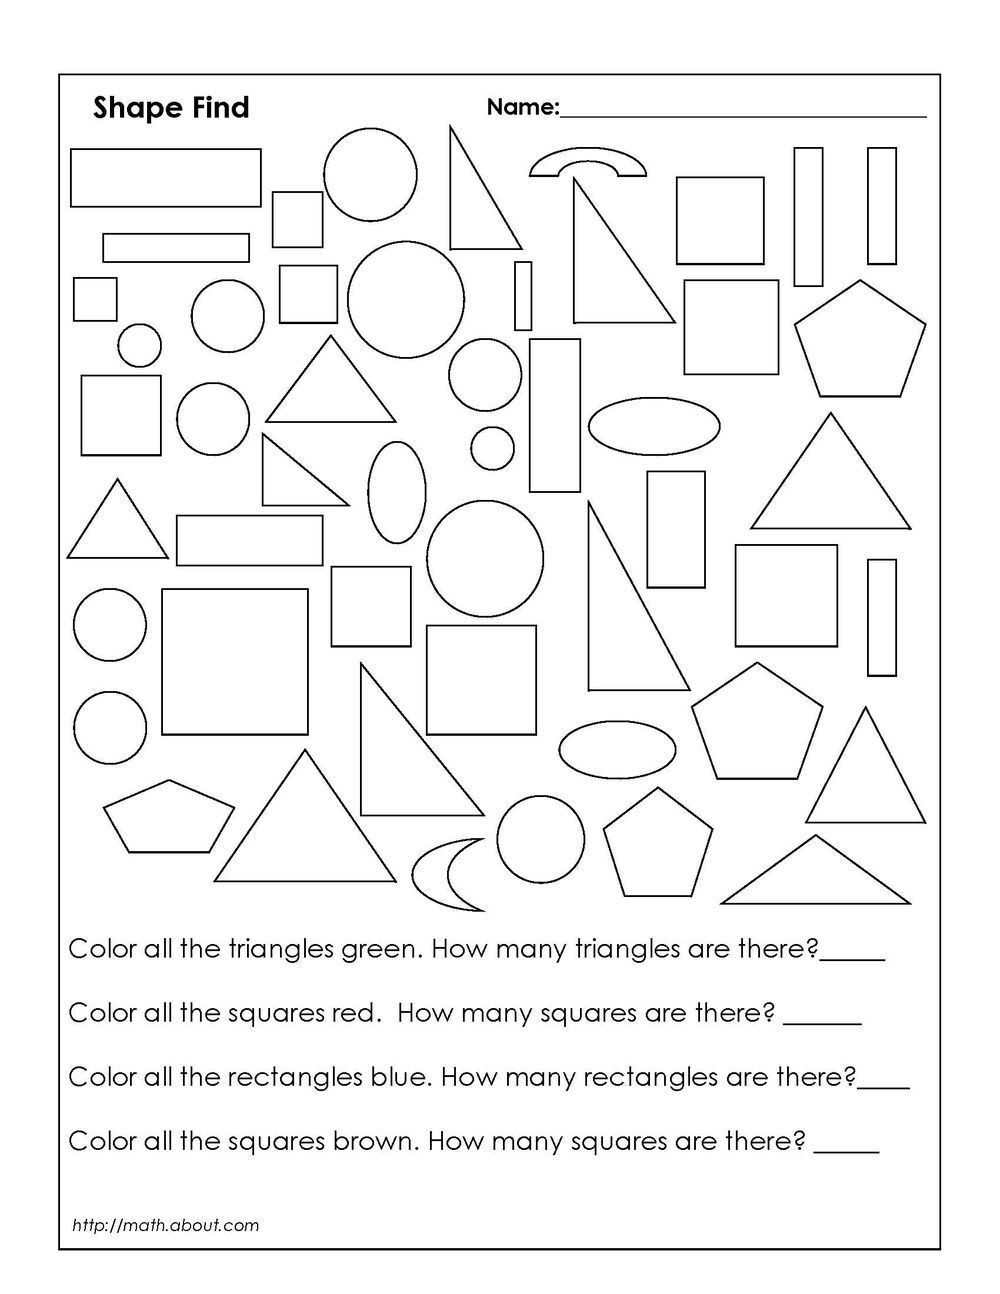 Second Grade Geometry Worksheets 1st Grade Geometry Worksheets for Students